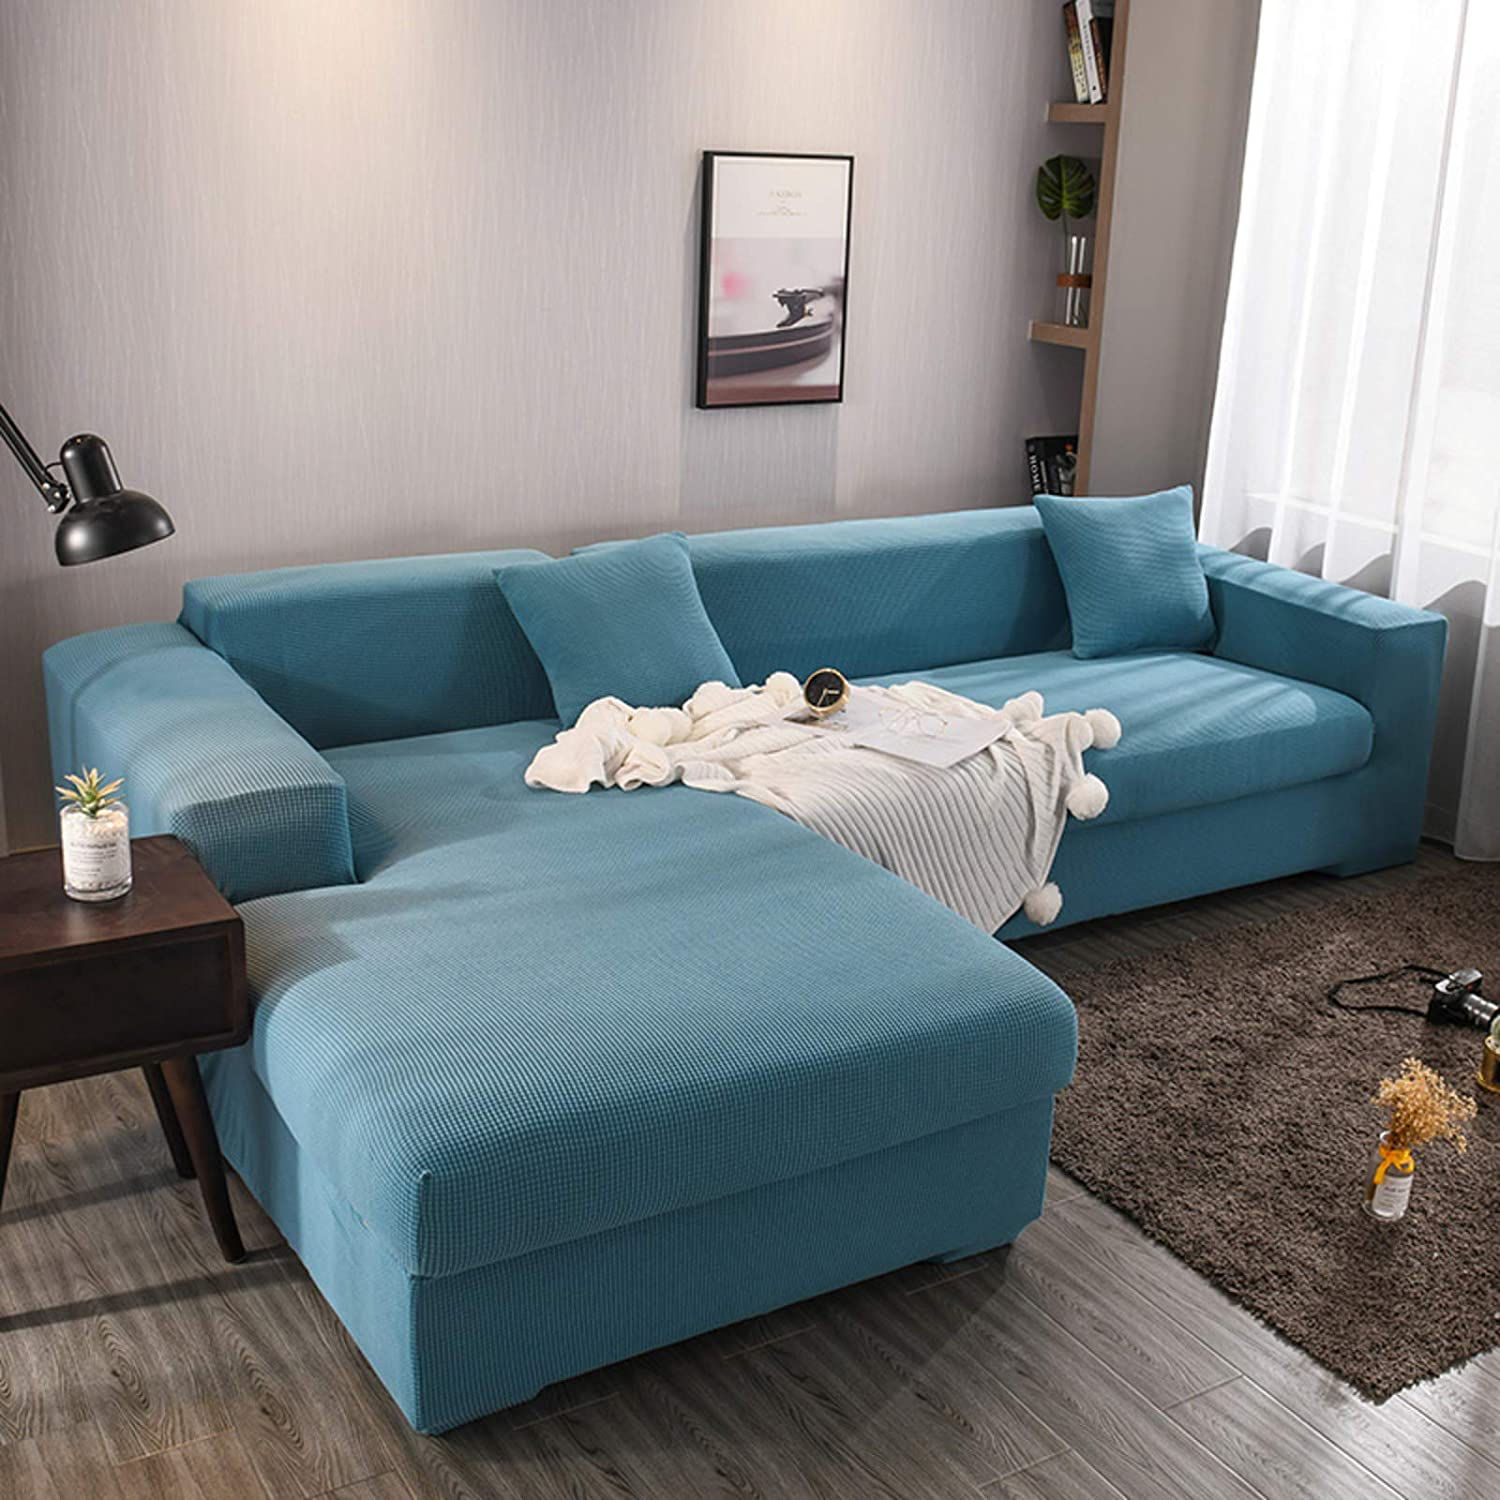 D&LE Sectional Couch Covers,2pcs L-Shaped Sofa Covers,Softness Furniture Slipcovers,Polyester Fabric Stretch Sofa Covers 3 Seats+4 Seats-Blue L-Shape 3+4 Seats(75''-91''+92''-119'')